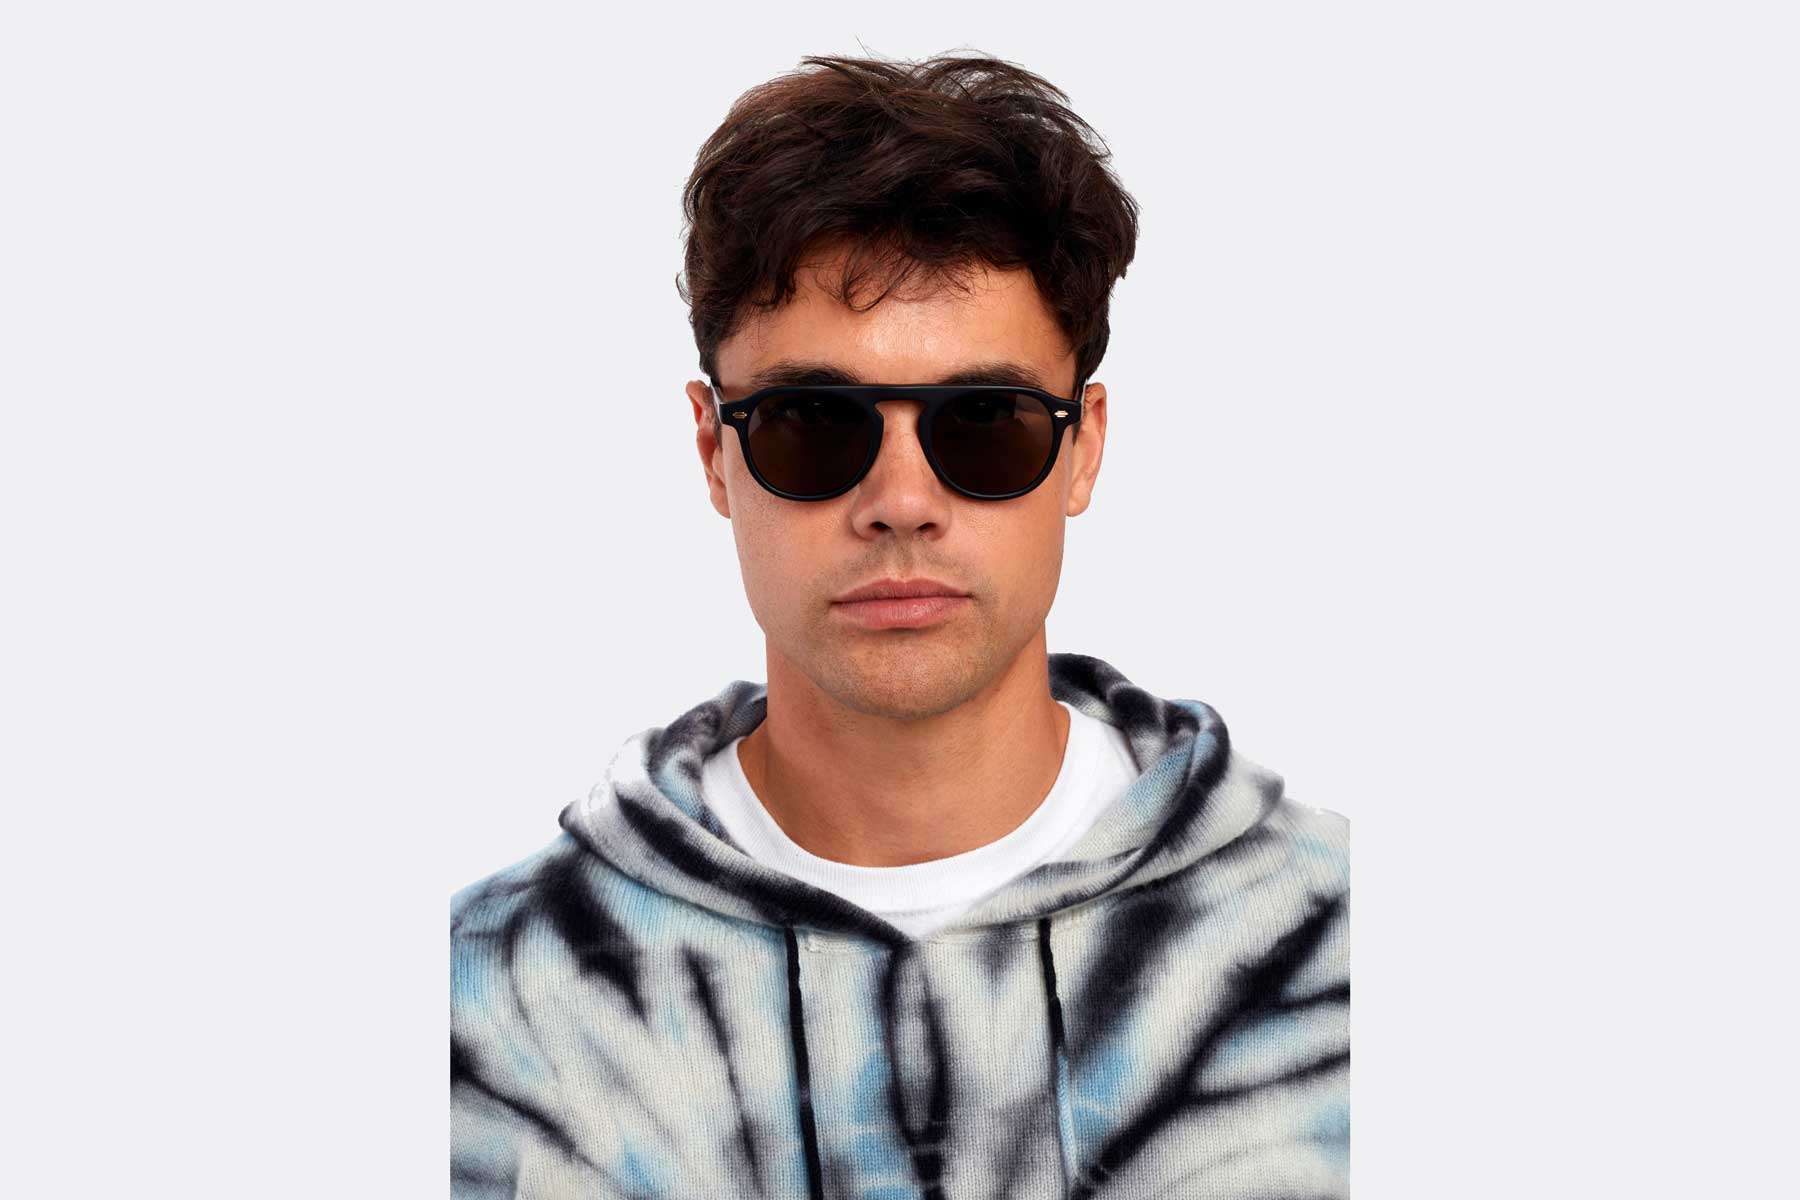 Garrett Leight sunglasses being modeled by young man in tie-dye hoodie